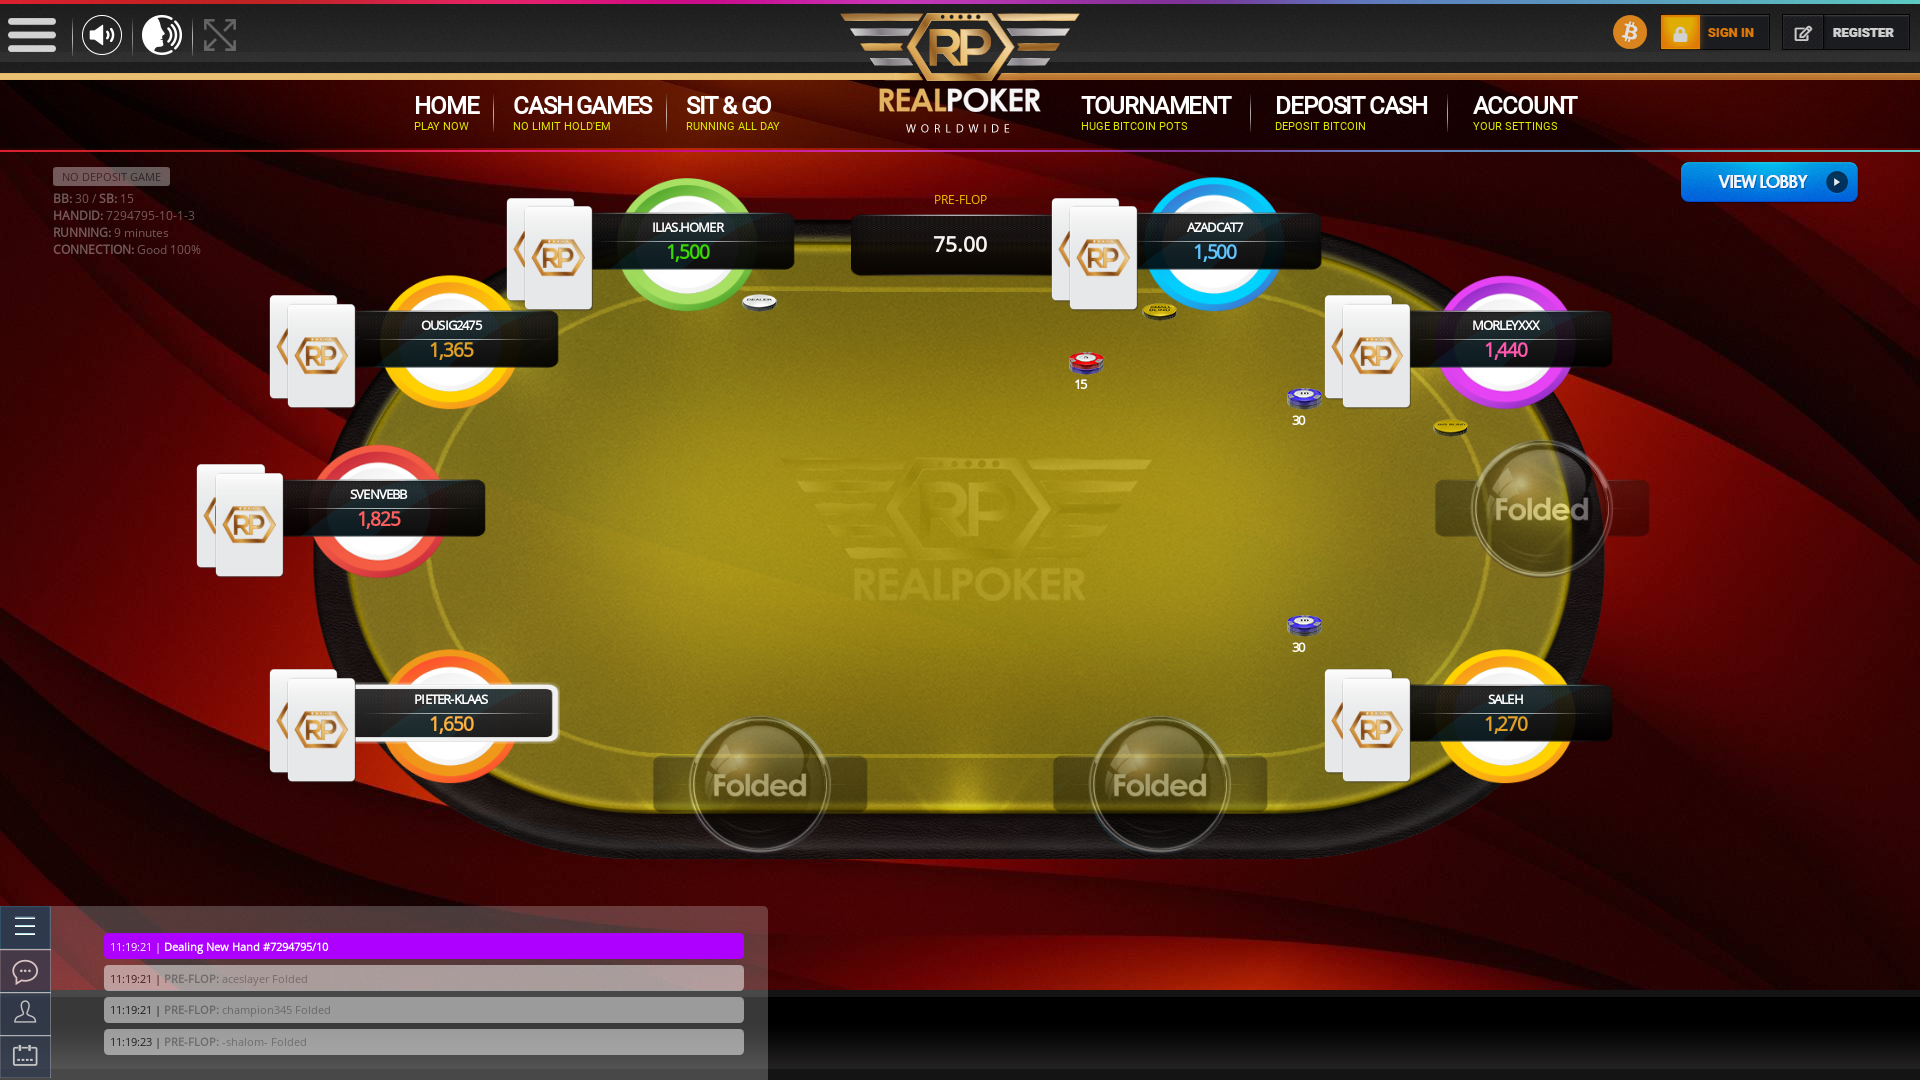 Romania Casino Bitcoin Poker from 4th April